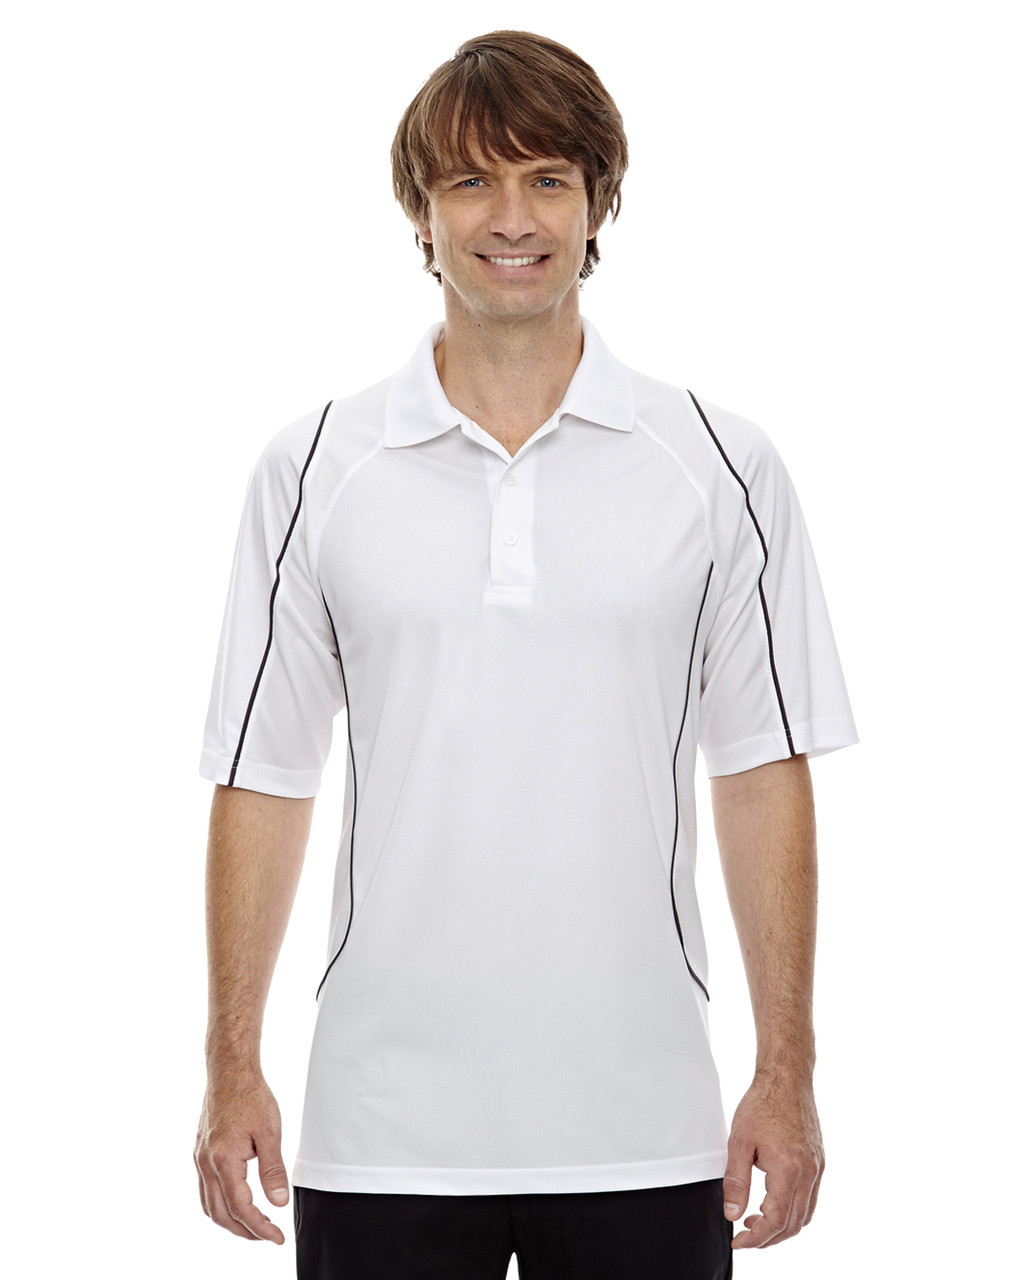 White - 85107 Ash City - Extreme Eperformance Men's Velocity Polo Shirt with Piping